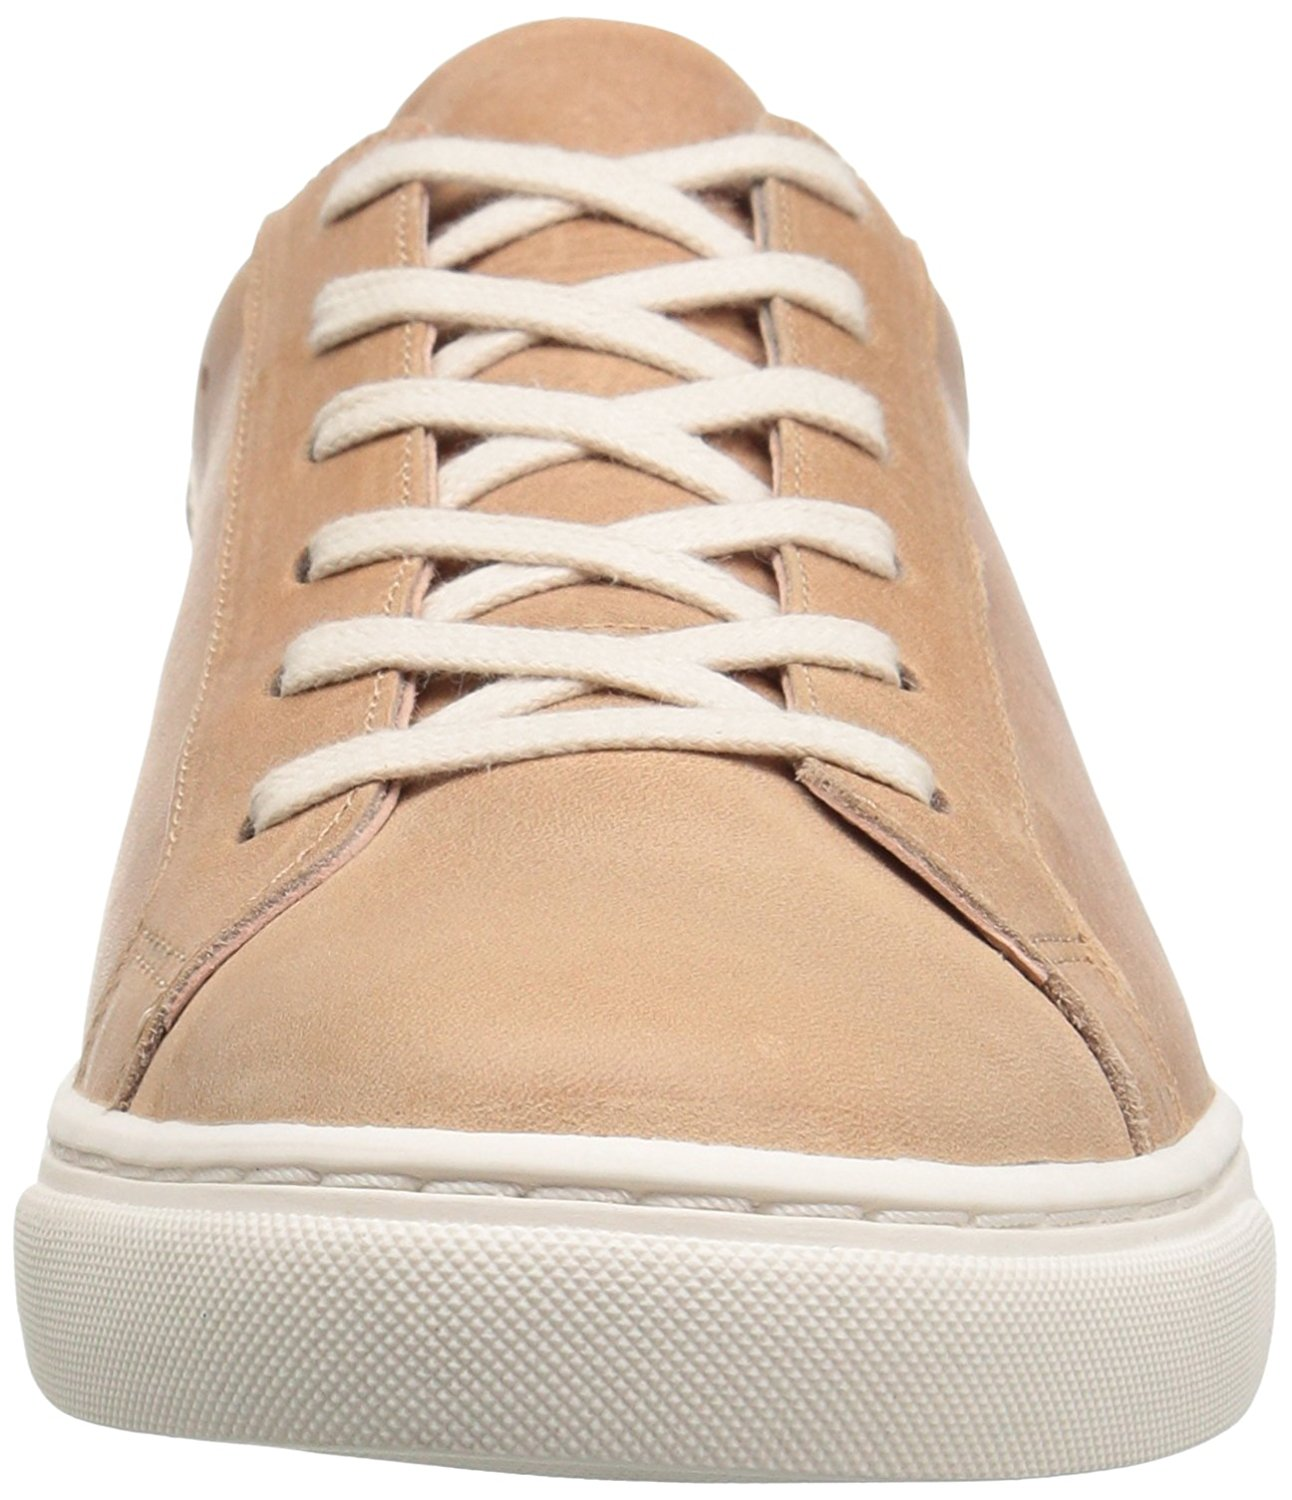 c974f997 Lucky Brand Womens Lotuss3 Leather Low Top Lace Up Fashion Sneakers ...